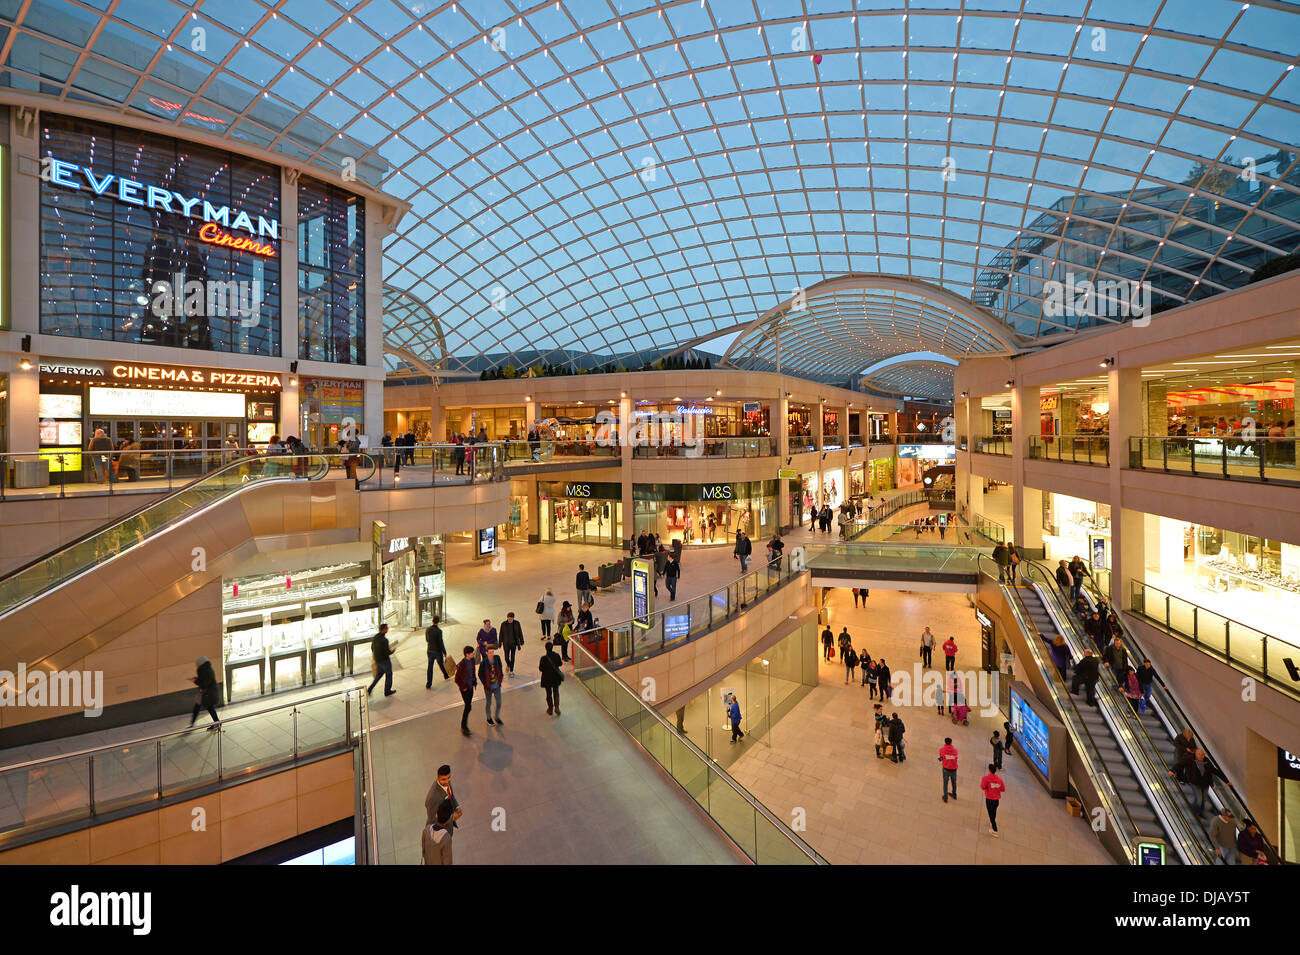 Trinity Leeds Shopping Centre, Leeds, West Yorkshire, England, United Kingdom - Stock Image